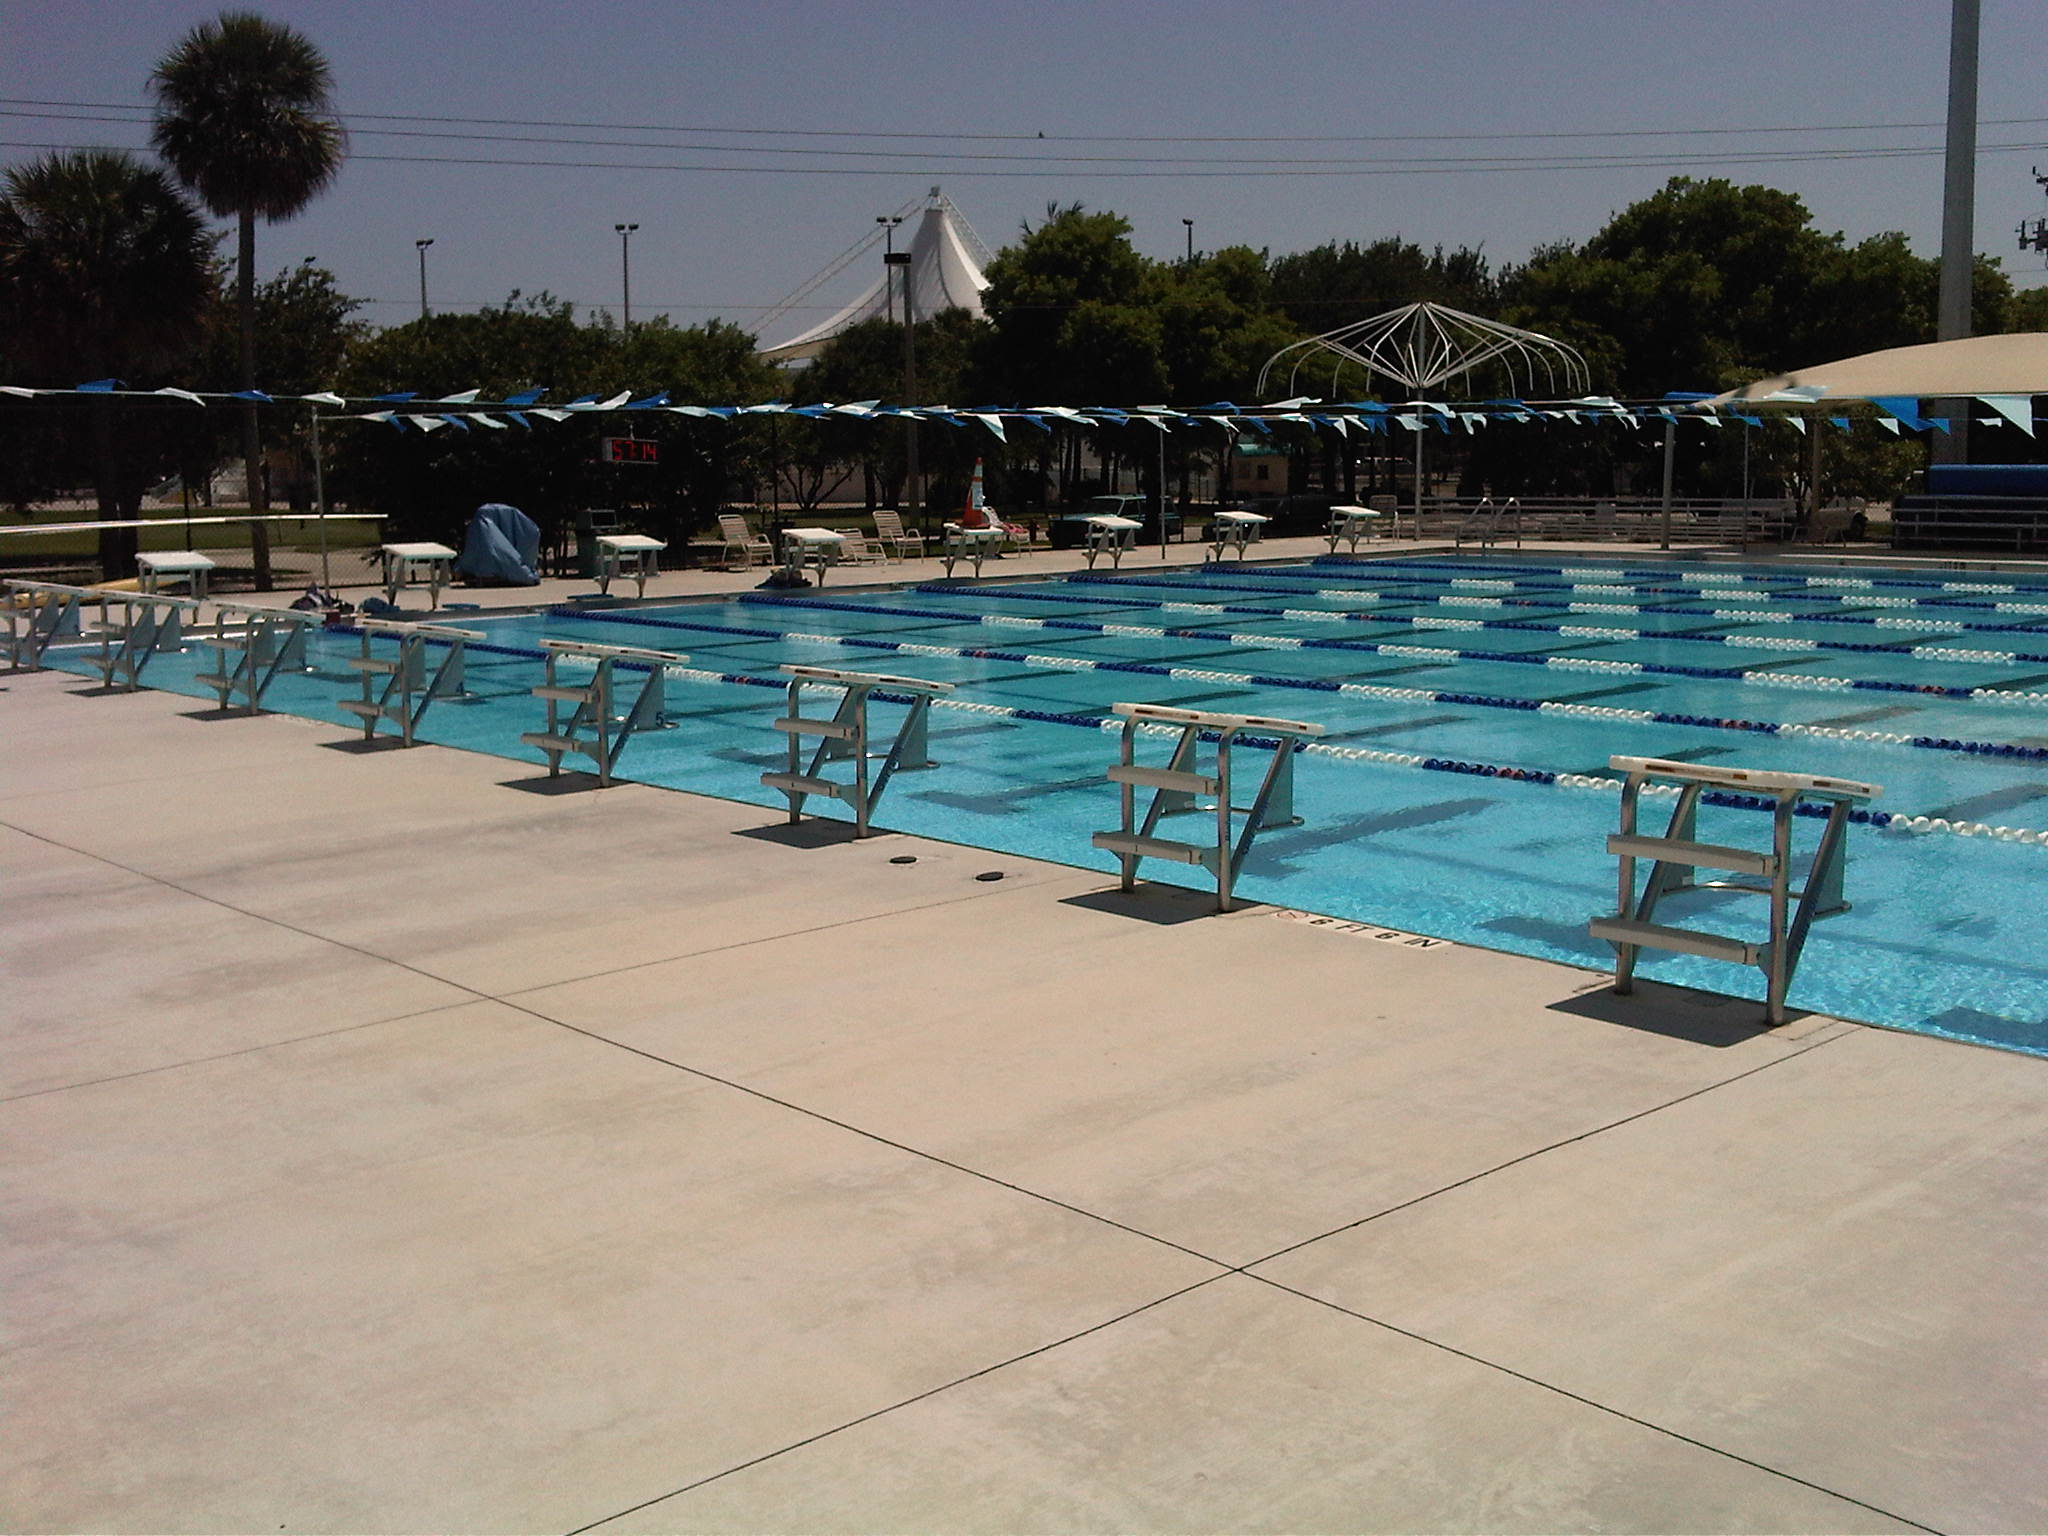 Pompano Beach Aquatic Center (FL)